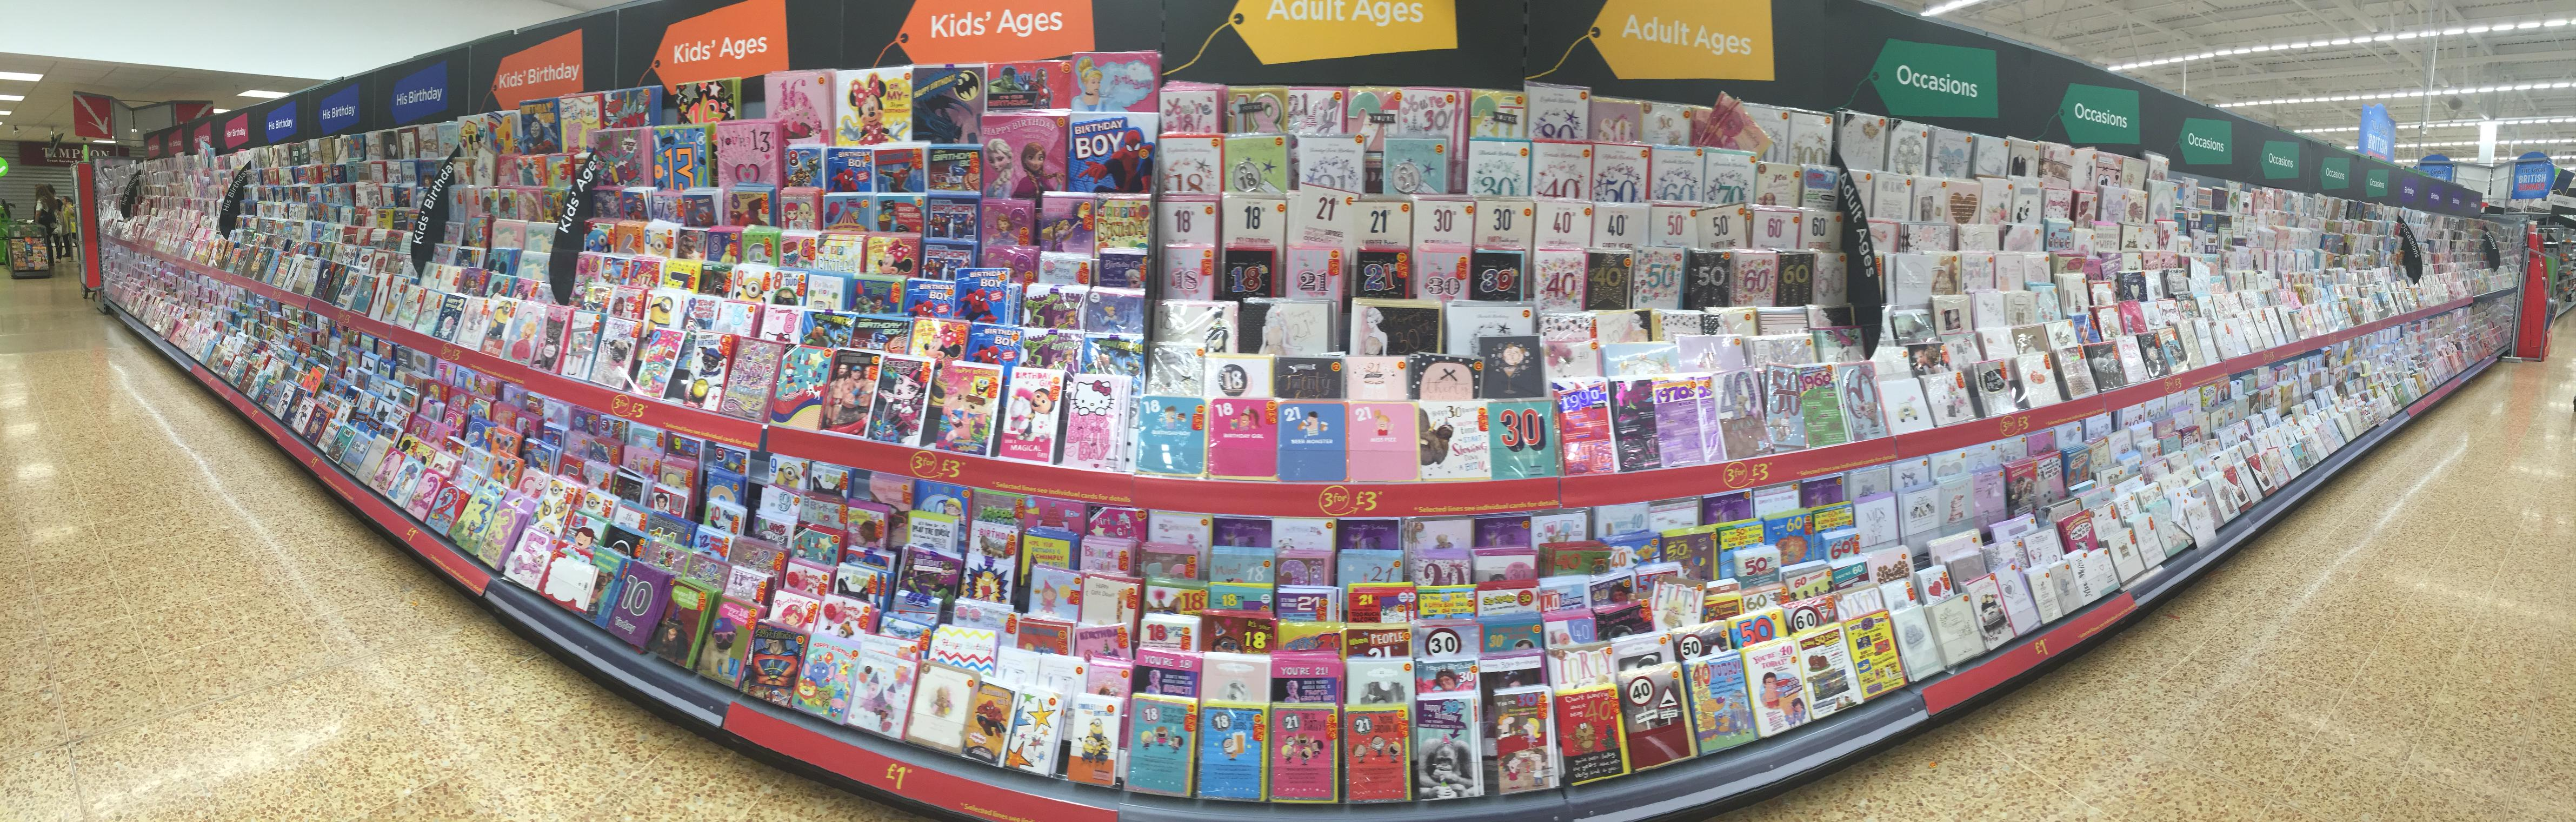 Above: UKG is Asda's category manager for greeting cards.